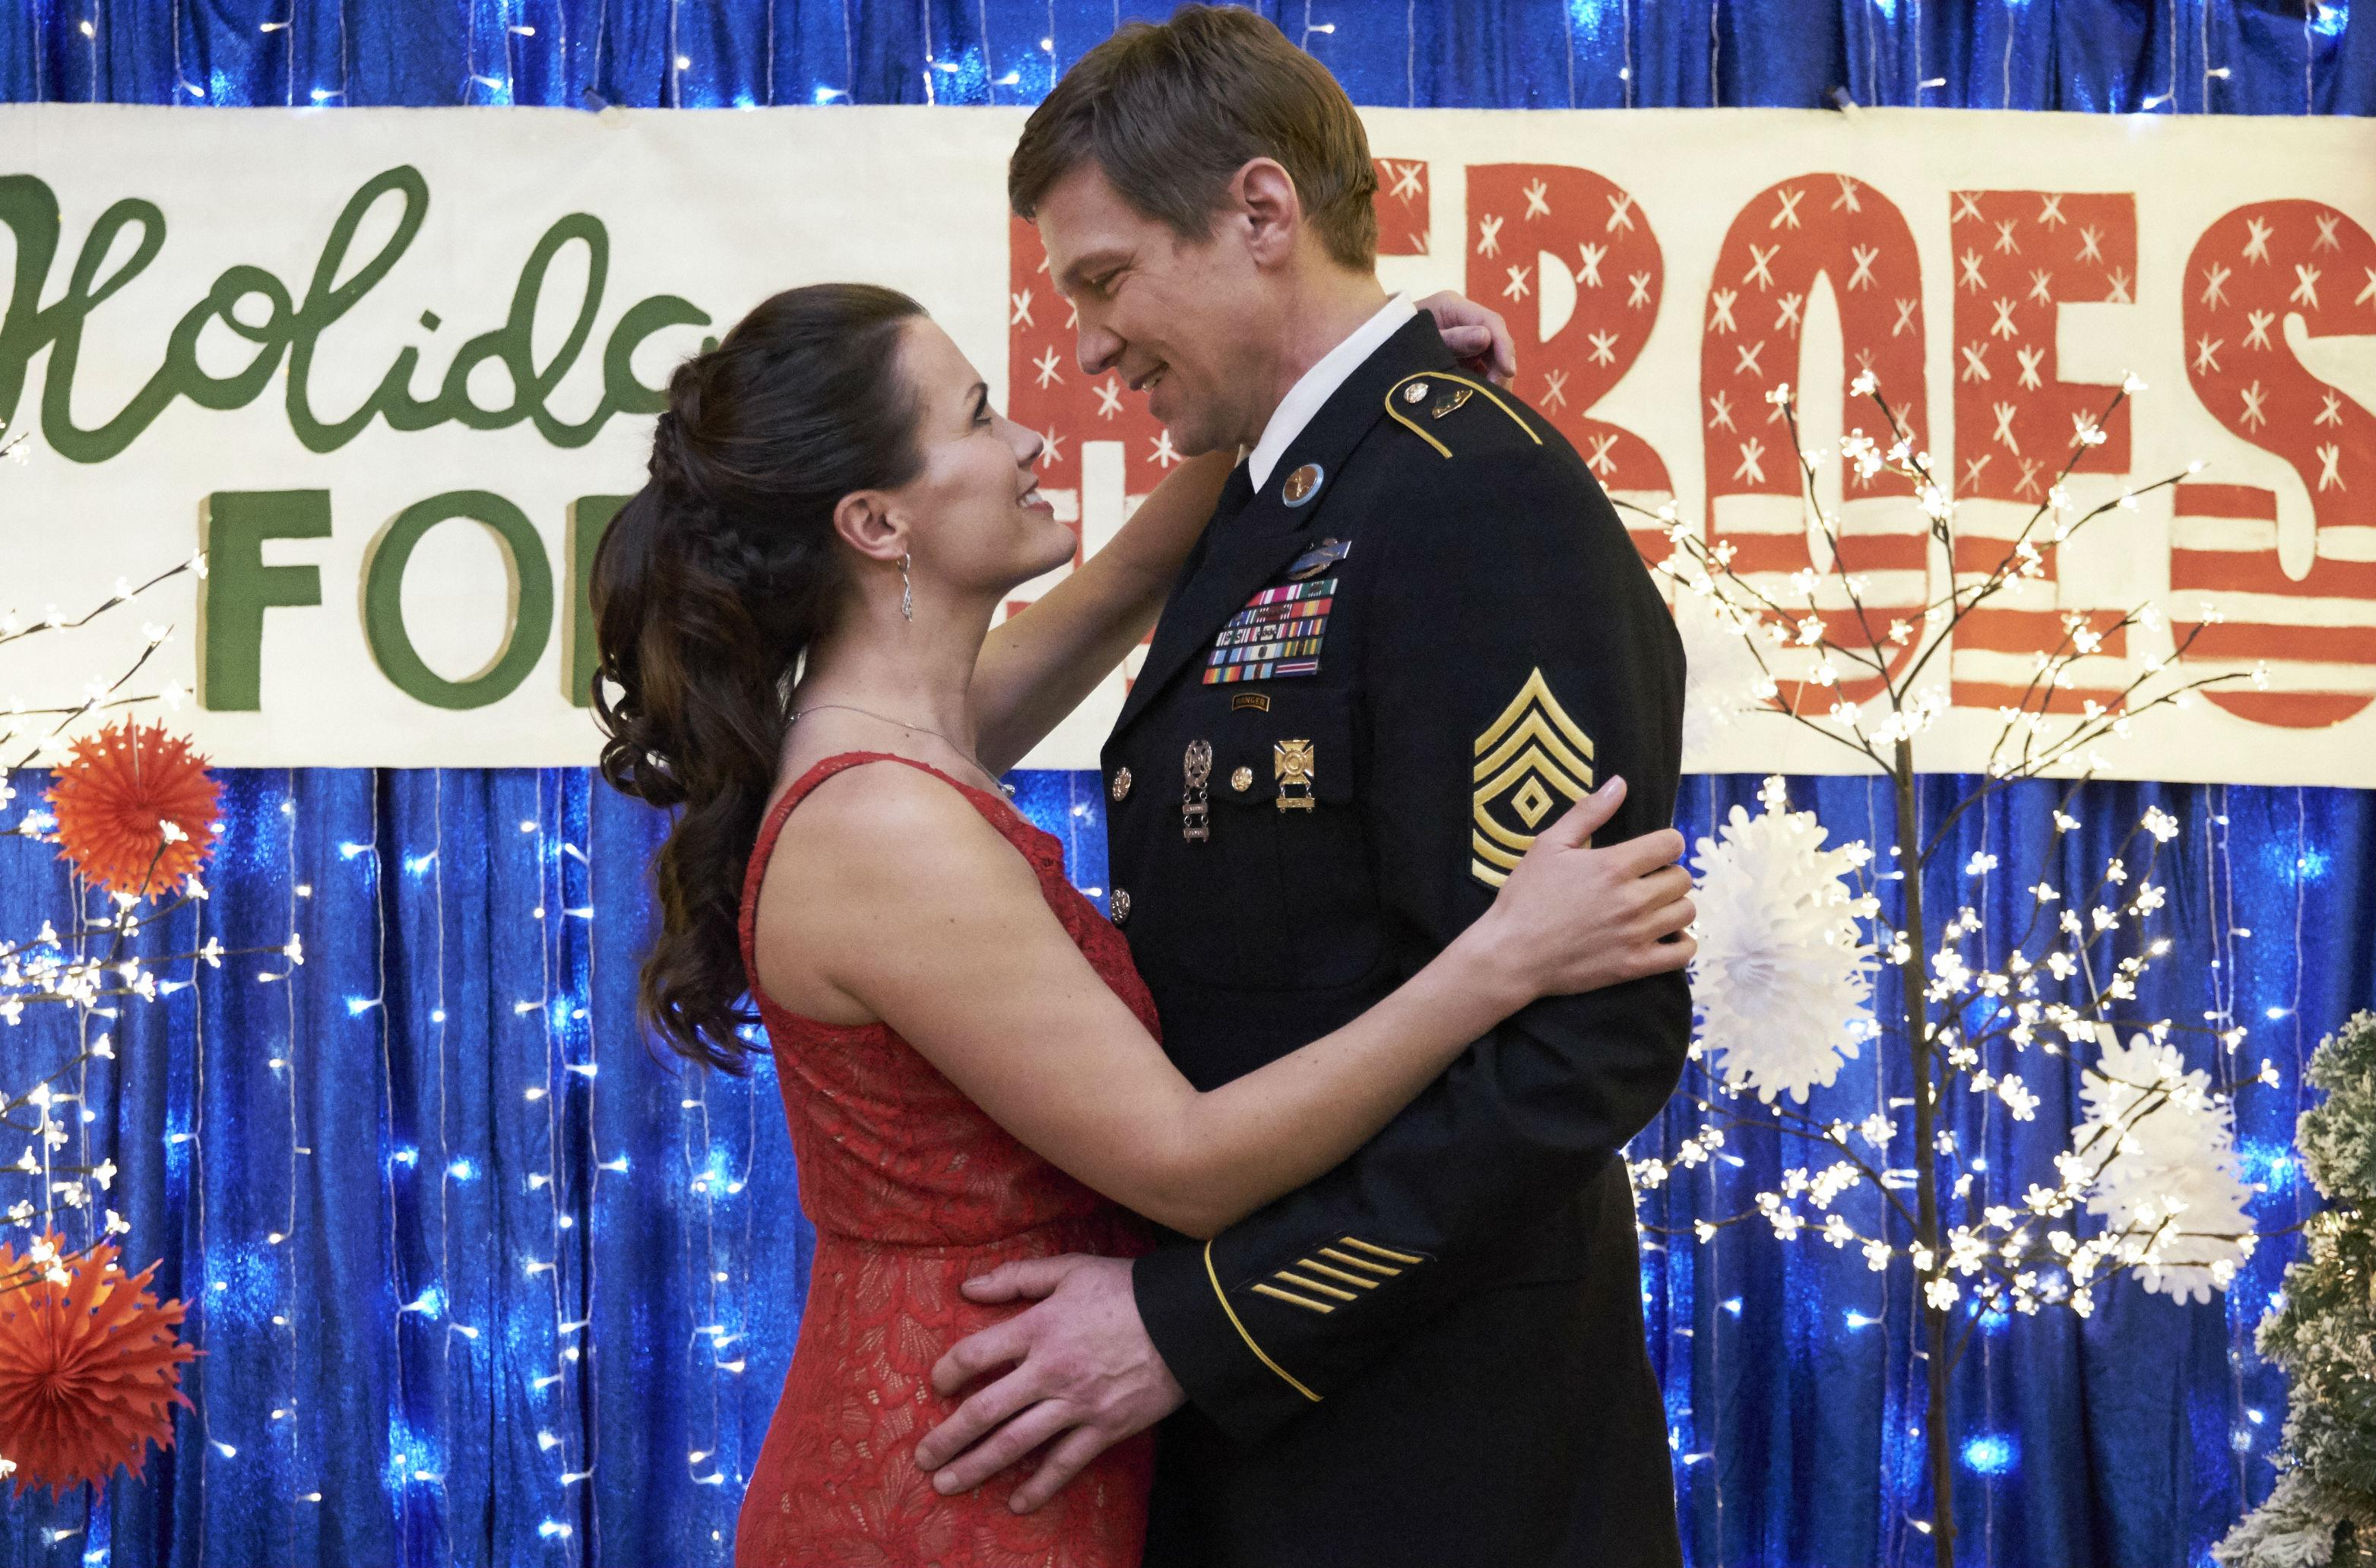 hallmark holiday for heroes synopsis